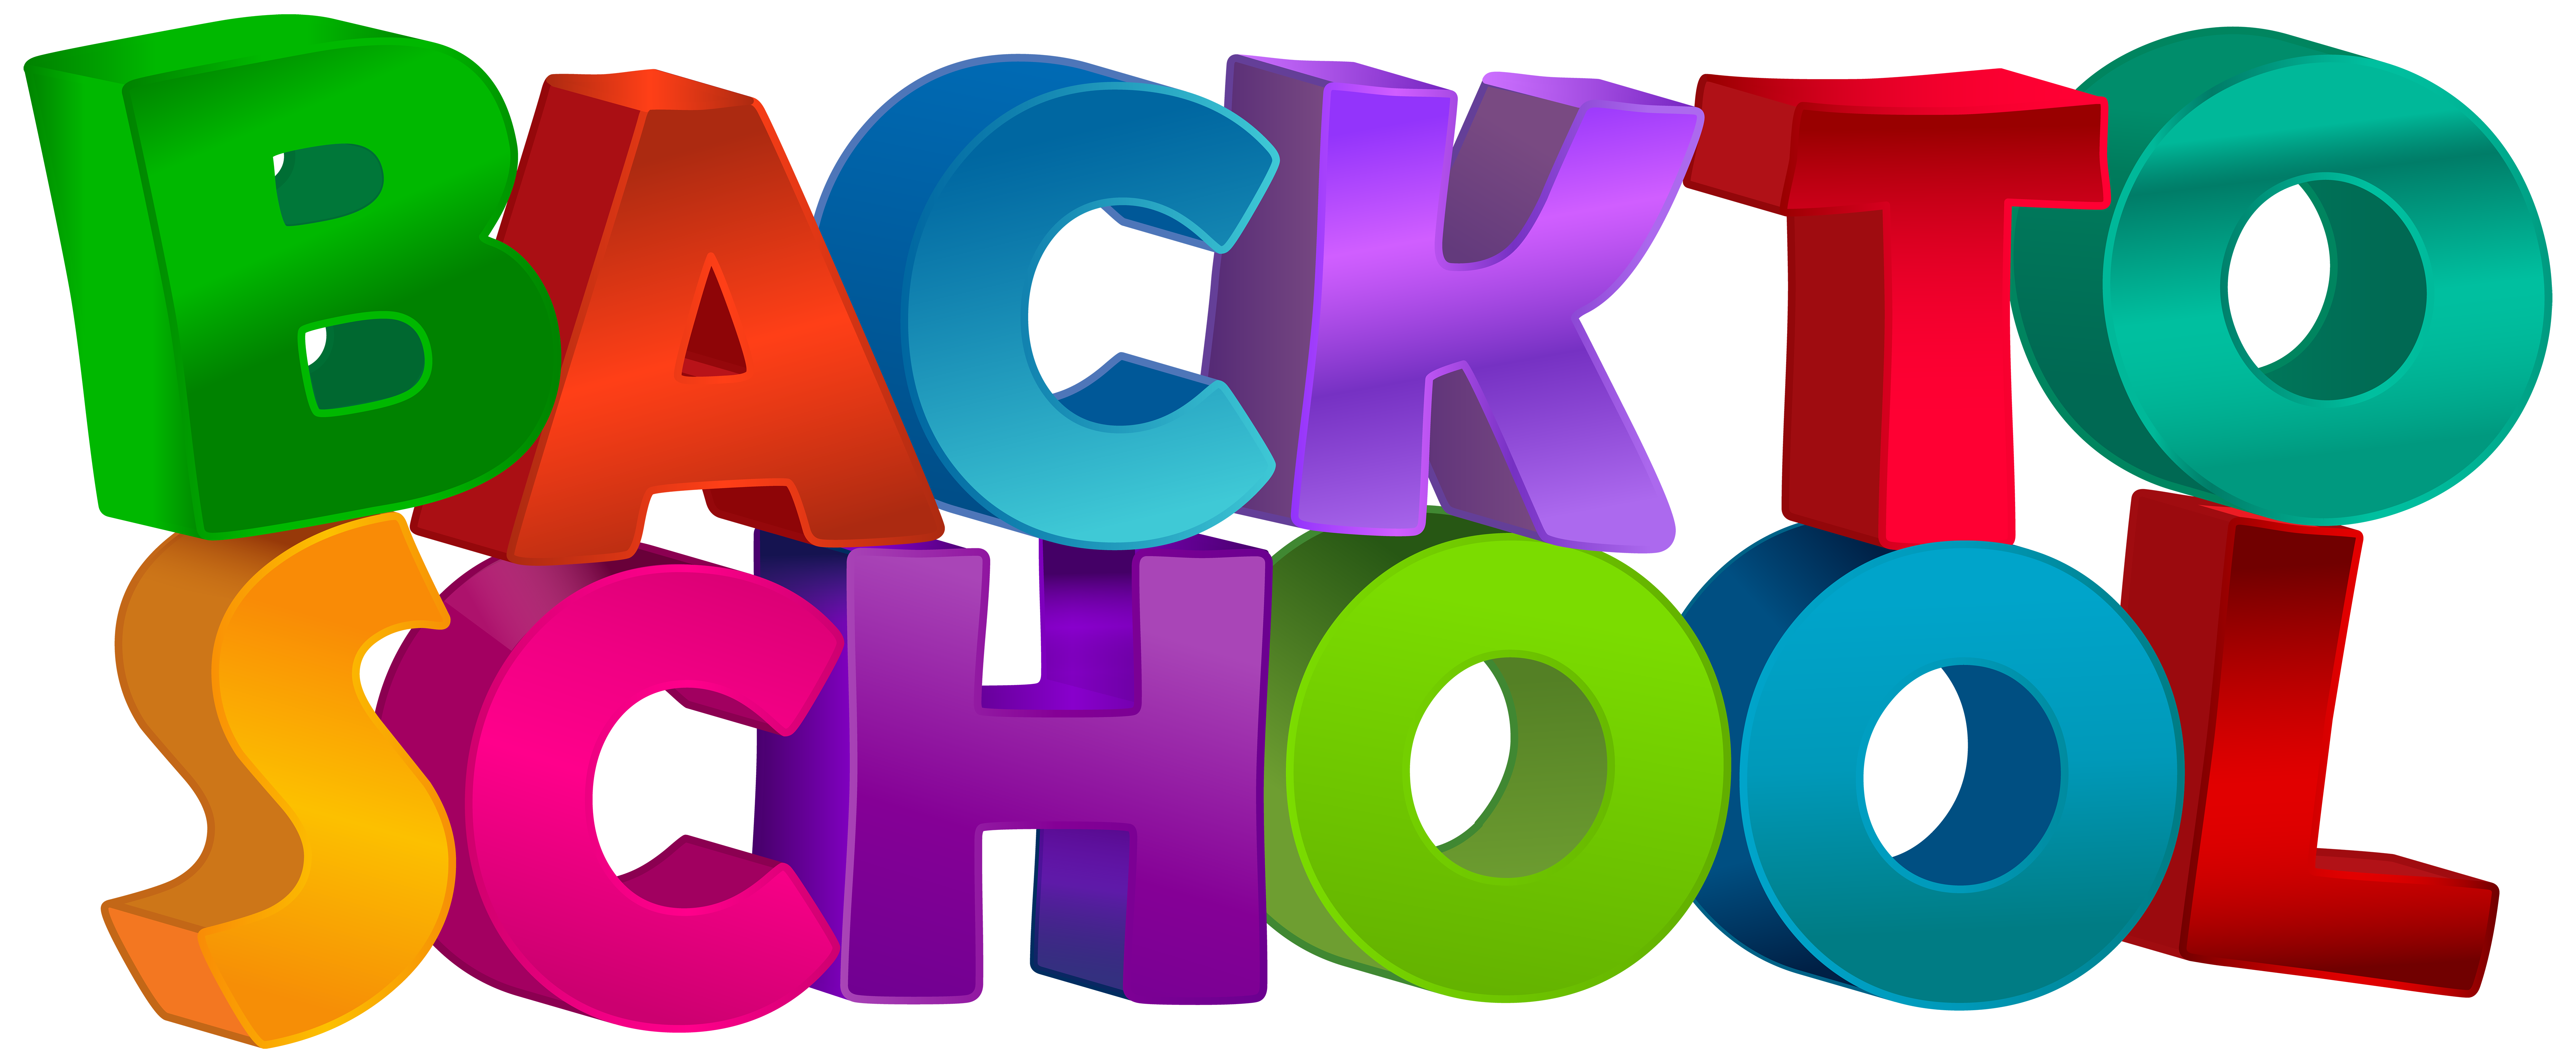 Clipart back to school free clip art royalty free Back to School Text Transparent Clip Art Image | Gallery ... clip art royalty free